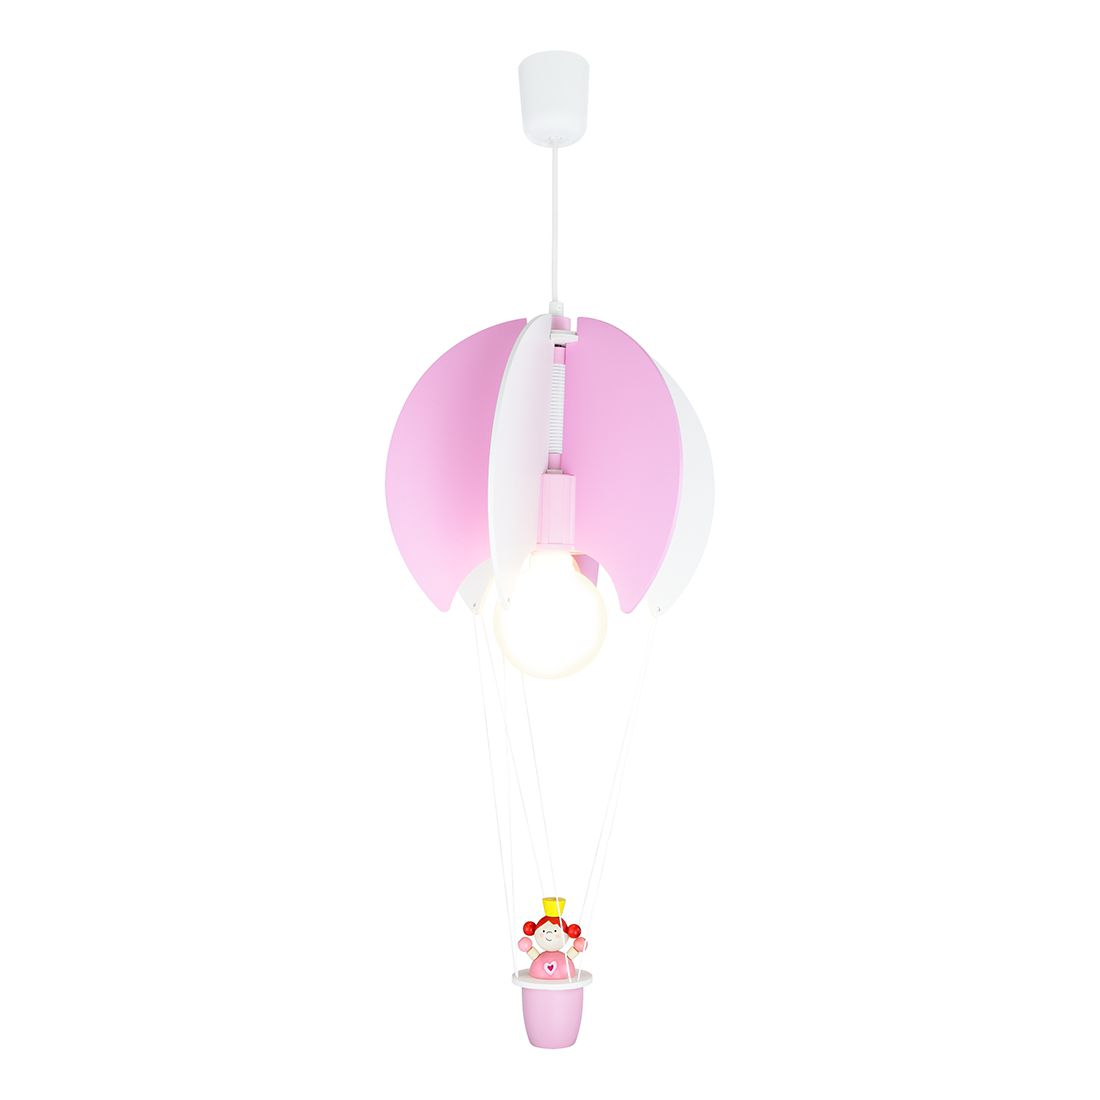 Home 24 - Eek a++, suspension ballon et princesse - bois 1 ampoule, elobra